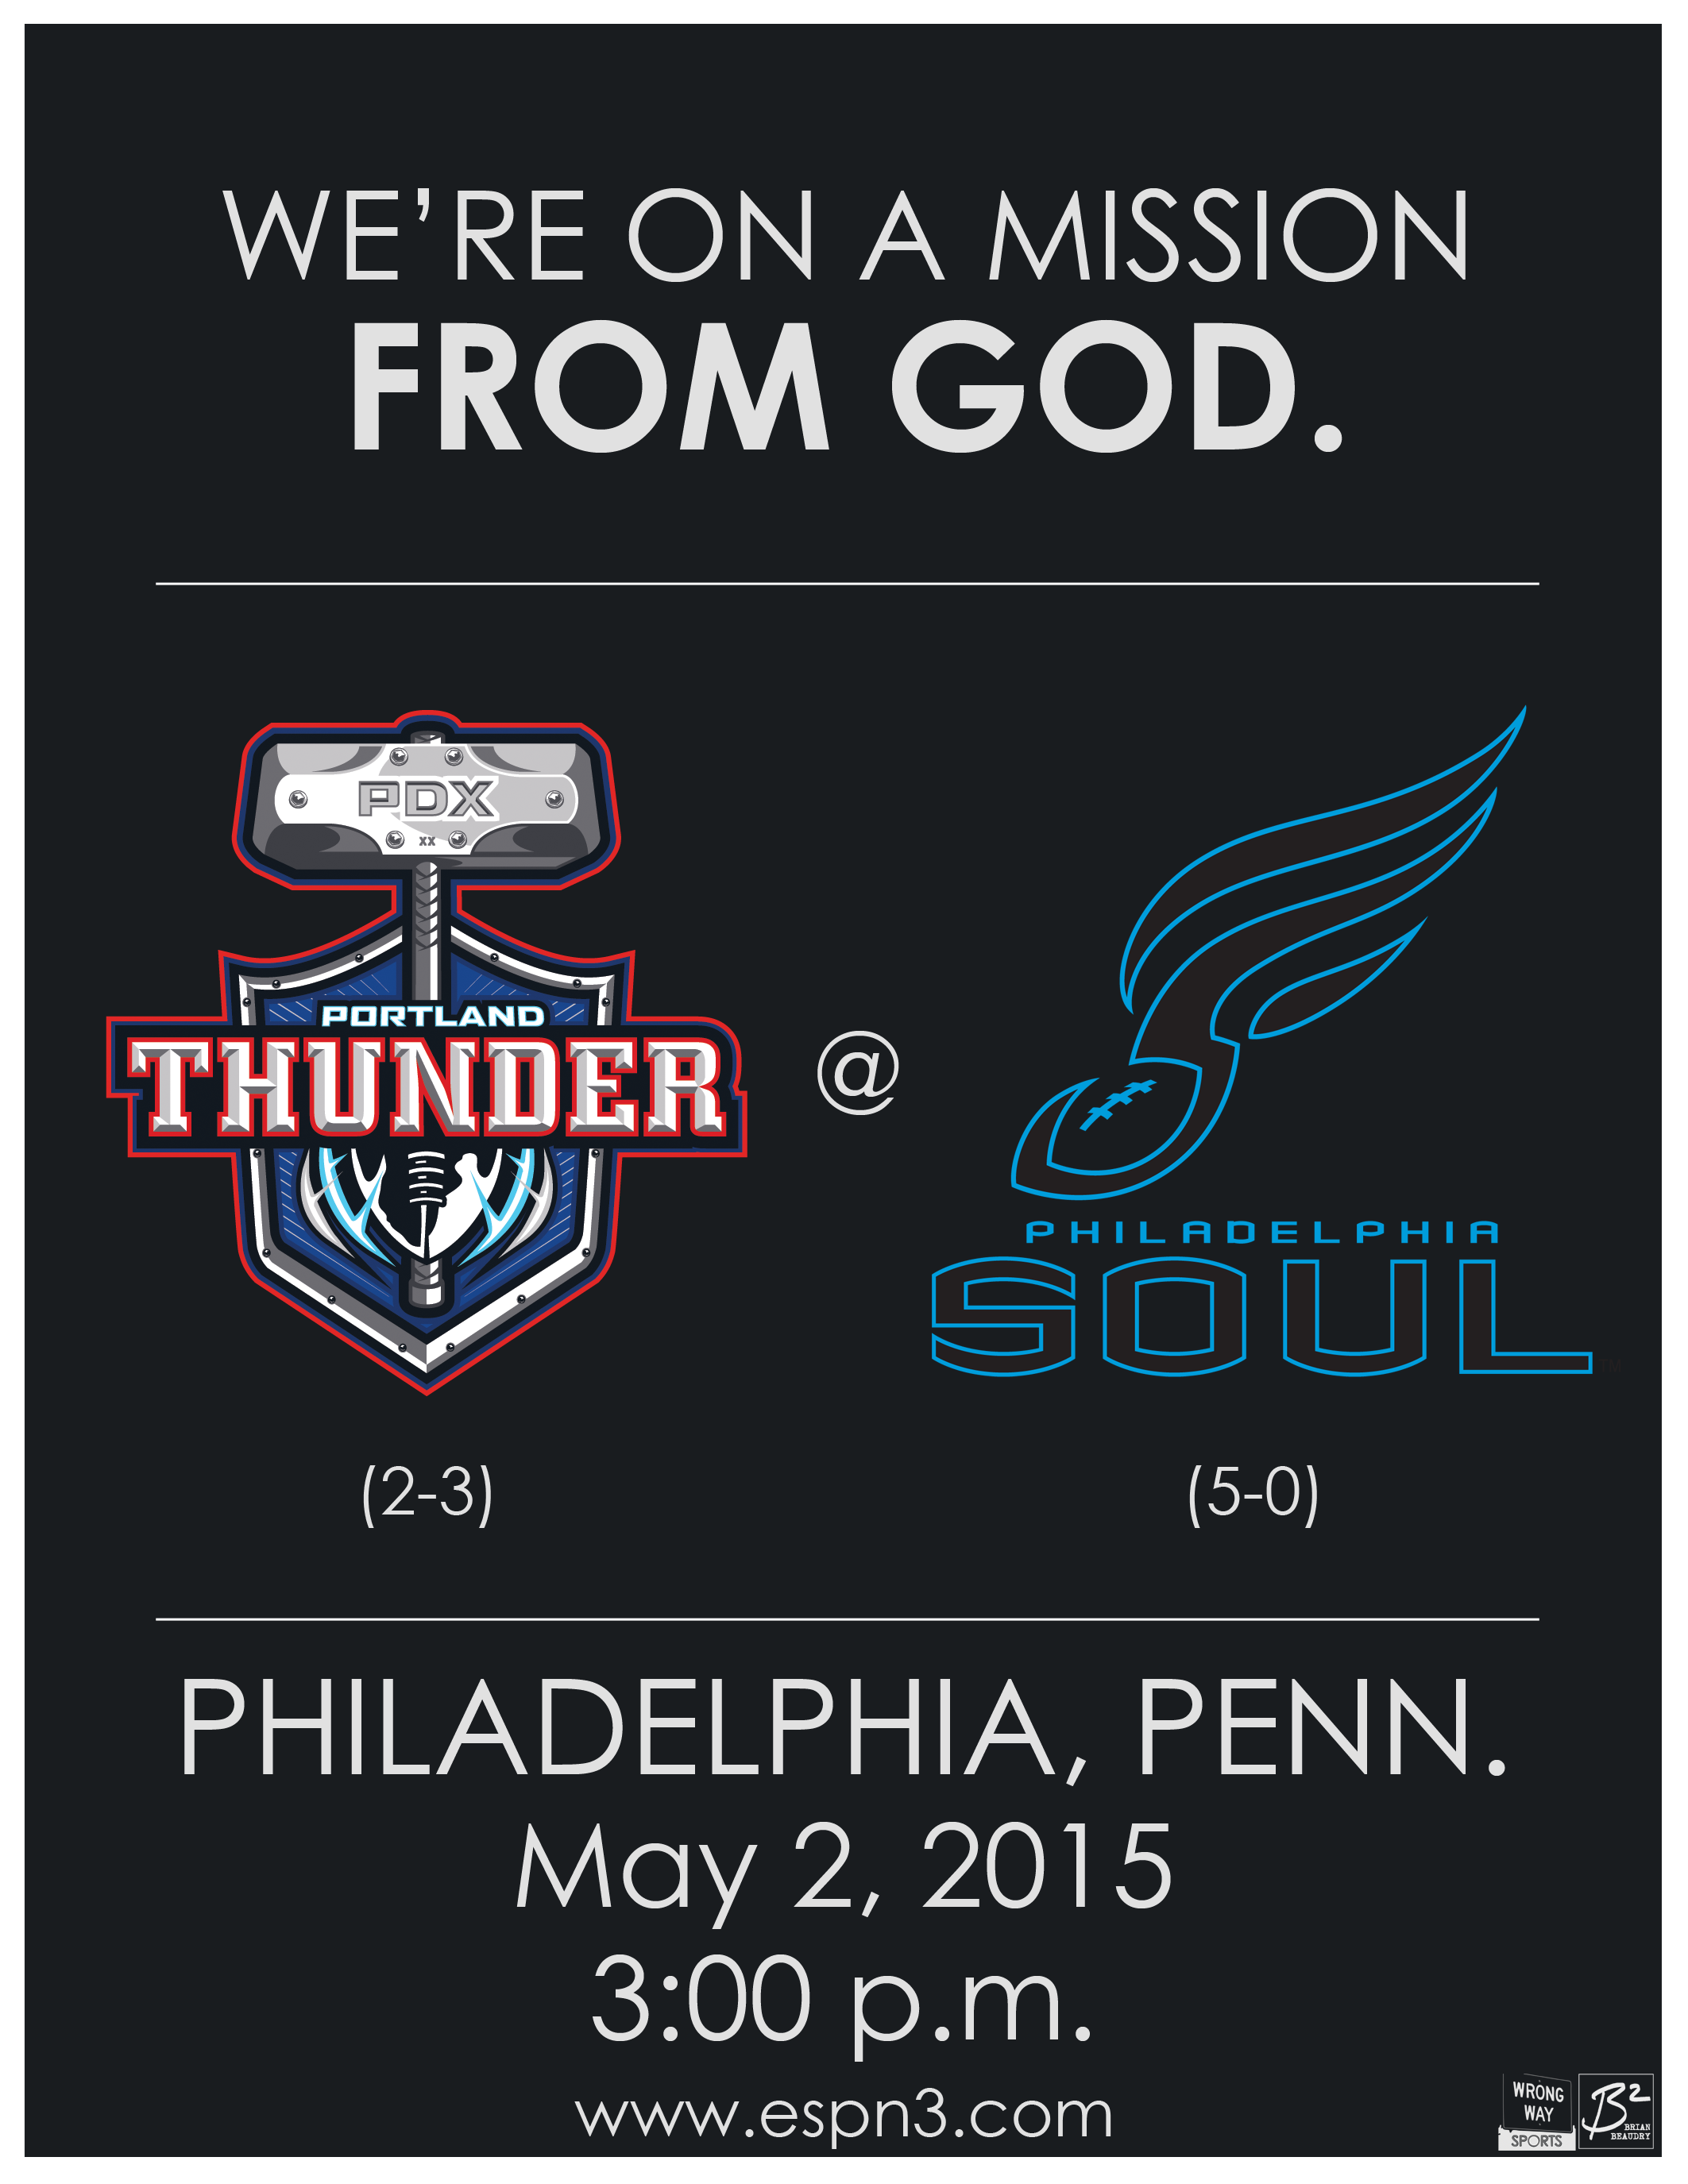 We're on a mission from God. Portland Thunder at Philadelphia Soul, May 2, 2015. 3 p.m. Game available on ESPN3.